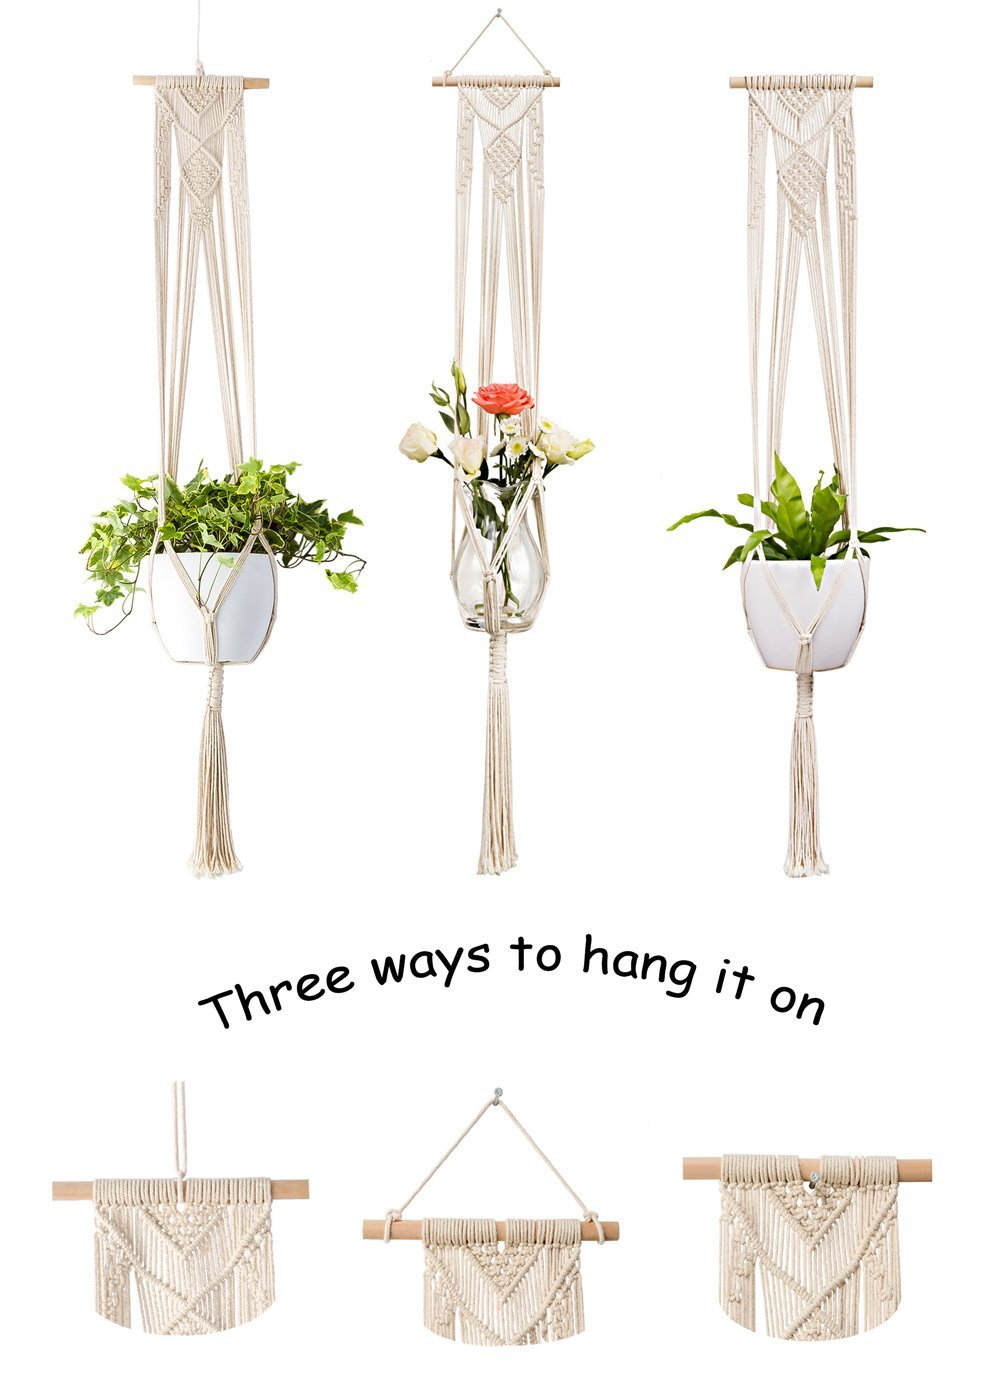 Pack of 2 Macrame Plant Hanger Hanging Planters Wall Decals